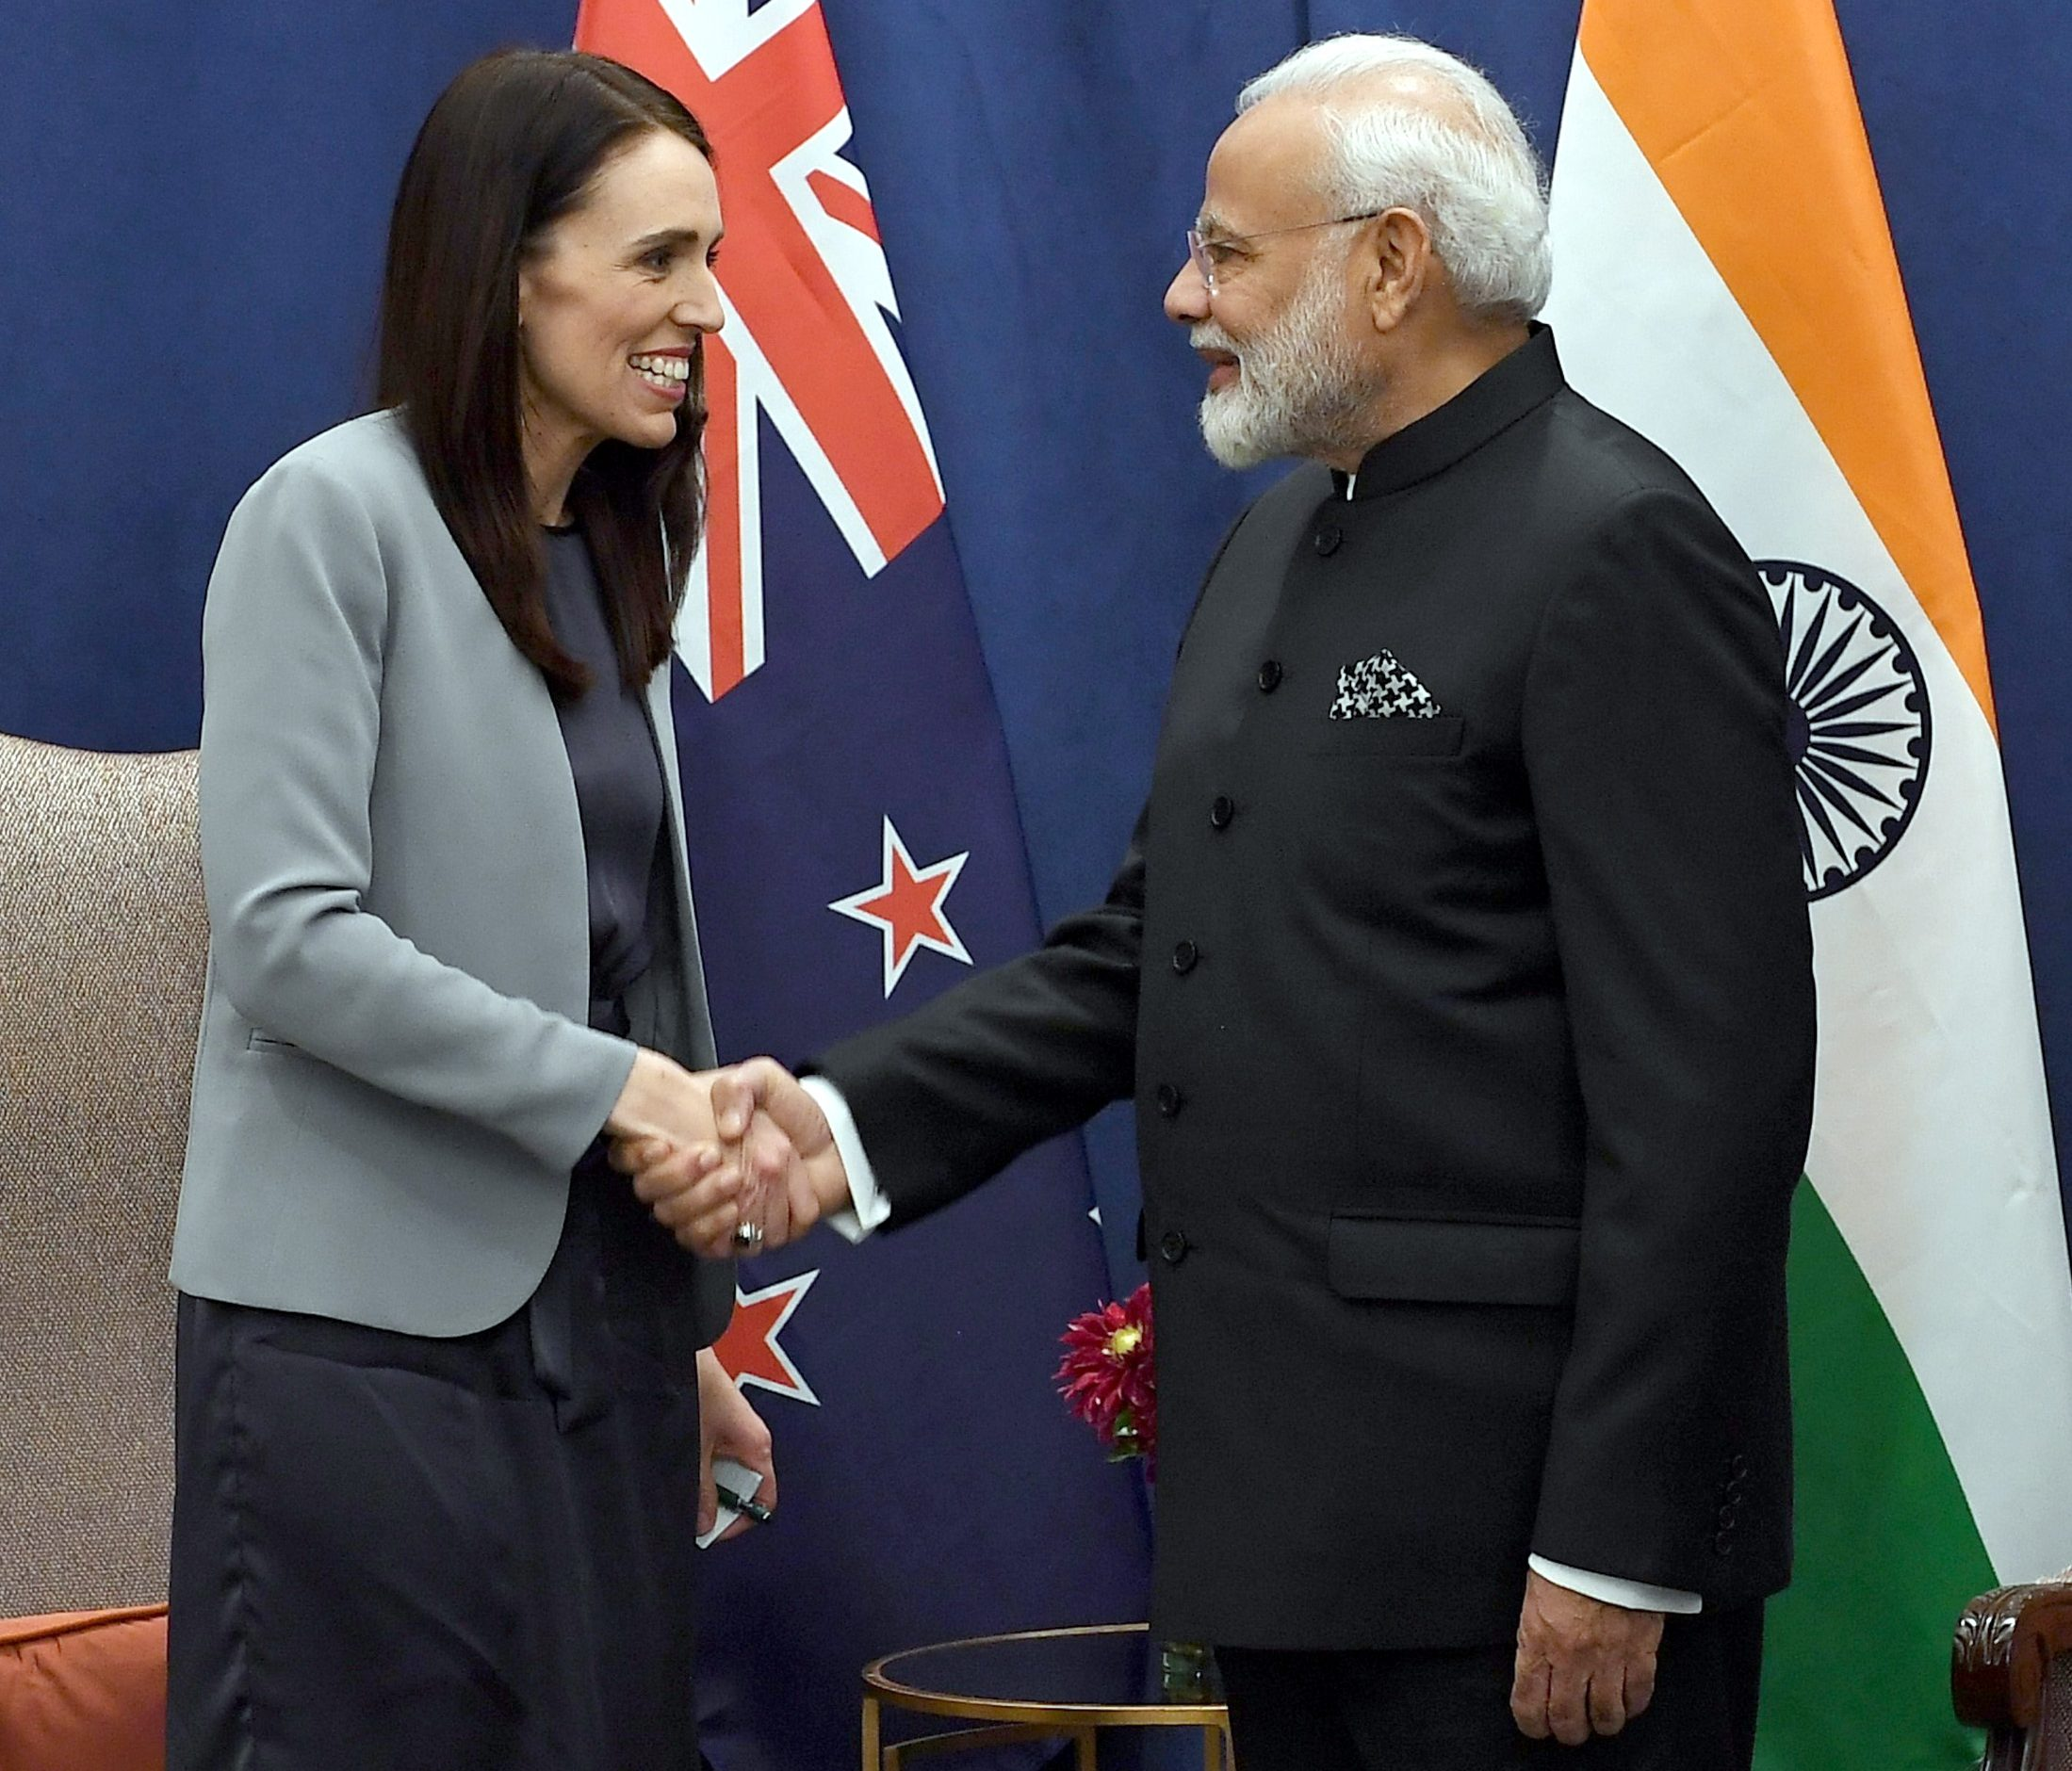 Bilateral meeting of PM with H.E. Ms Jacinda Ardern, Prime Minister of New Zealand Bilateral meeting of PM with H.E. Ms Jacinda Ardern, Prime Minister of New Zealand